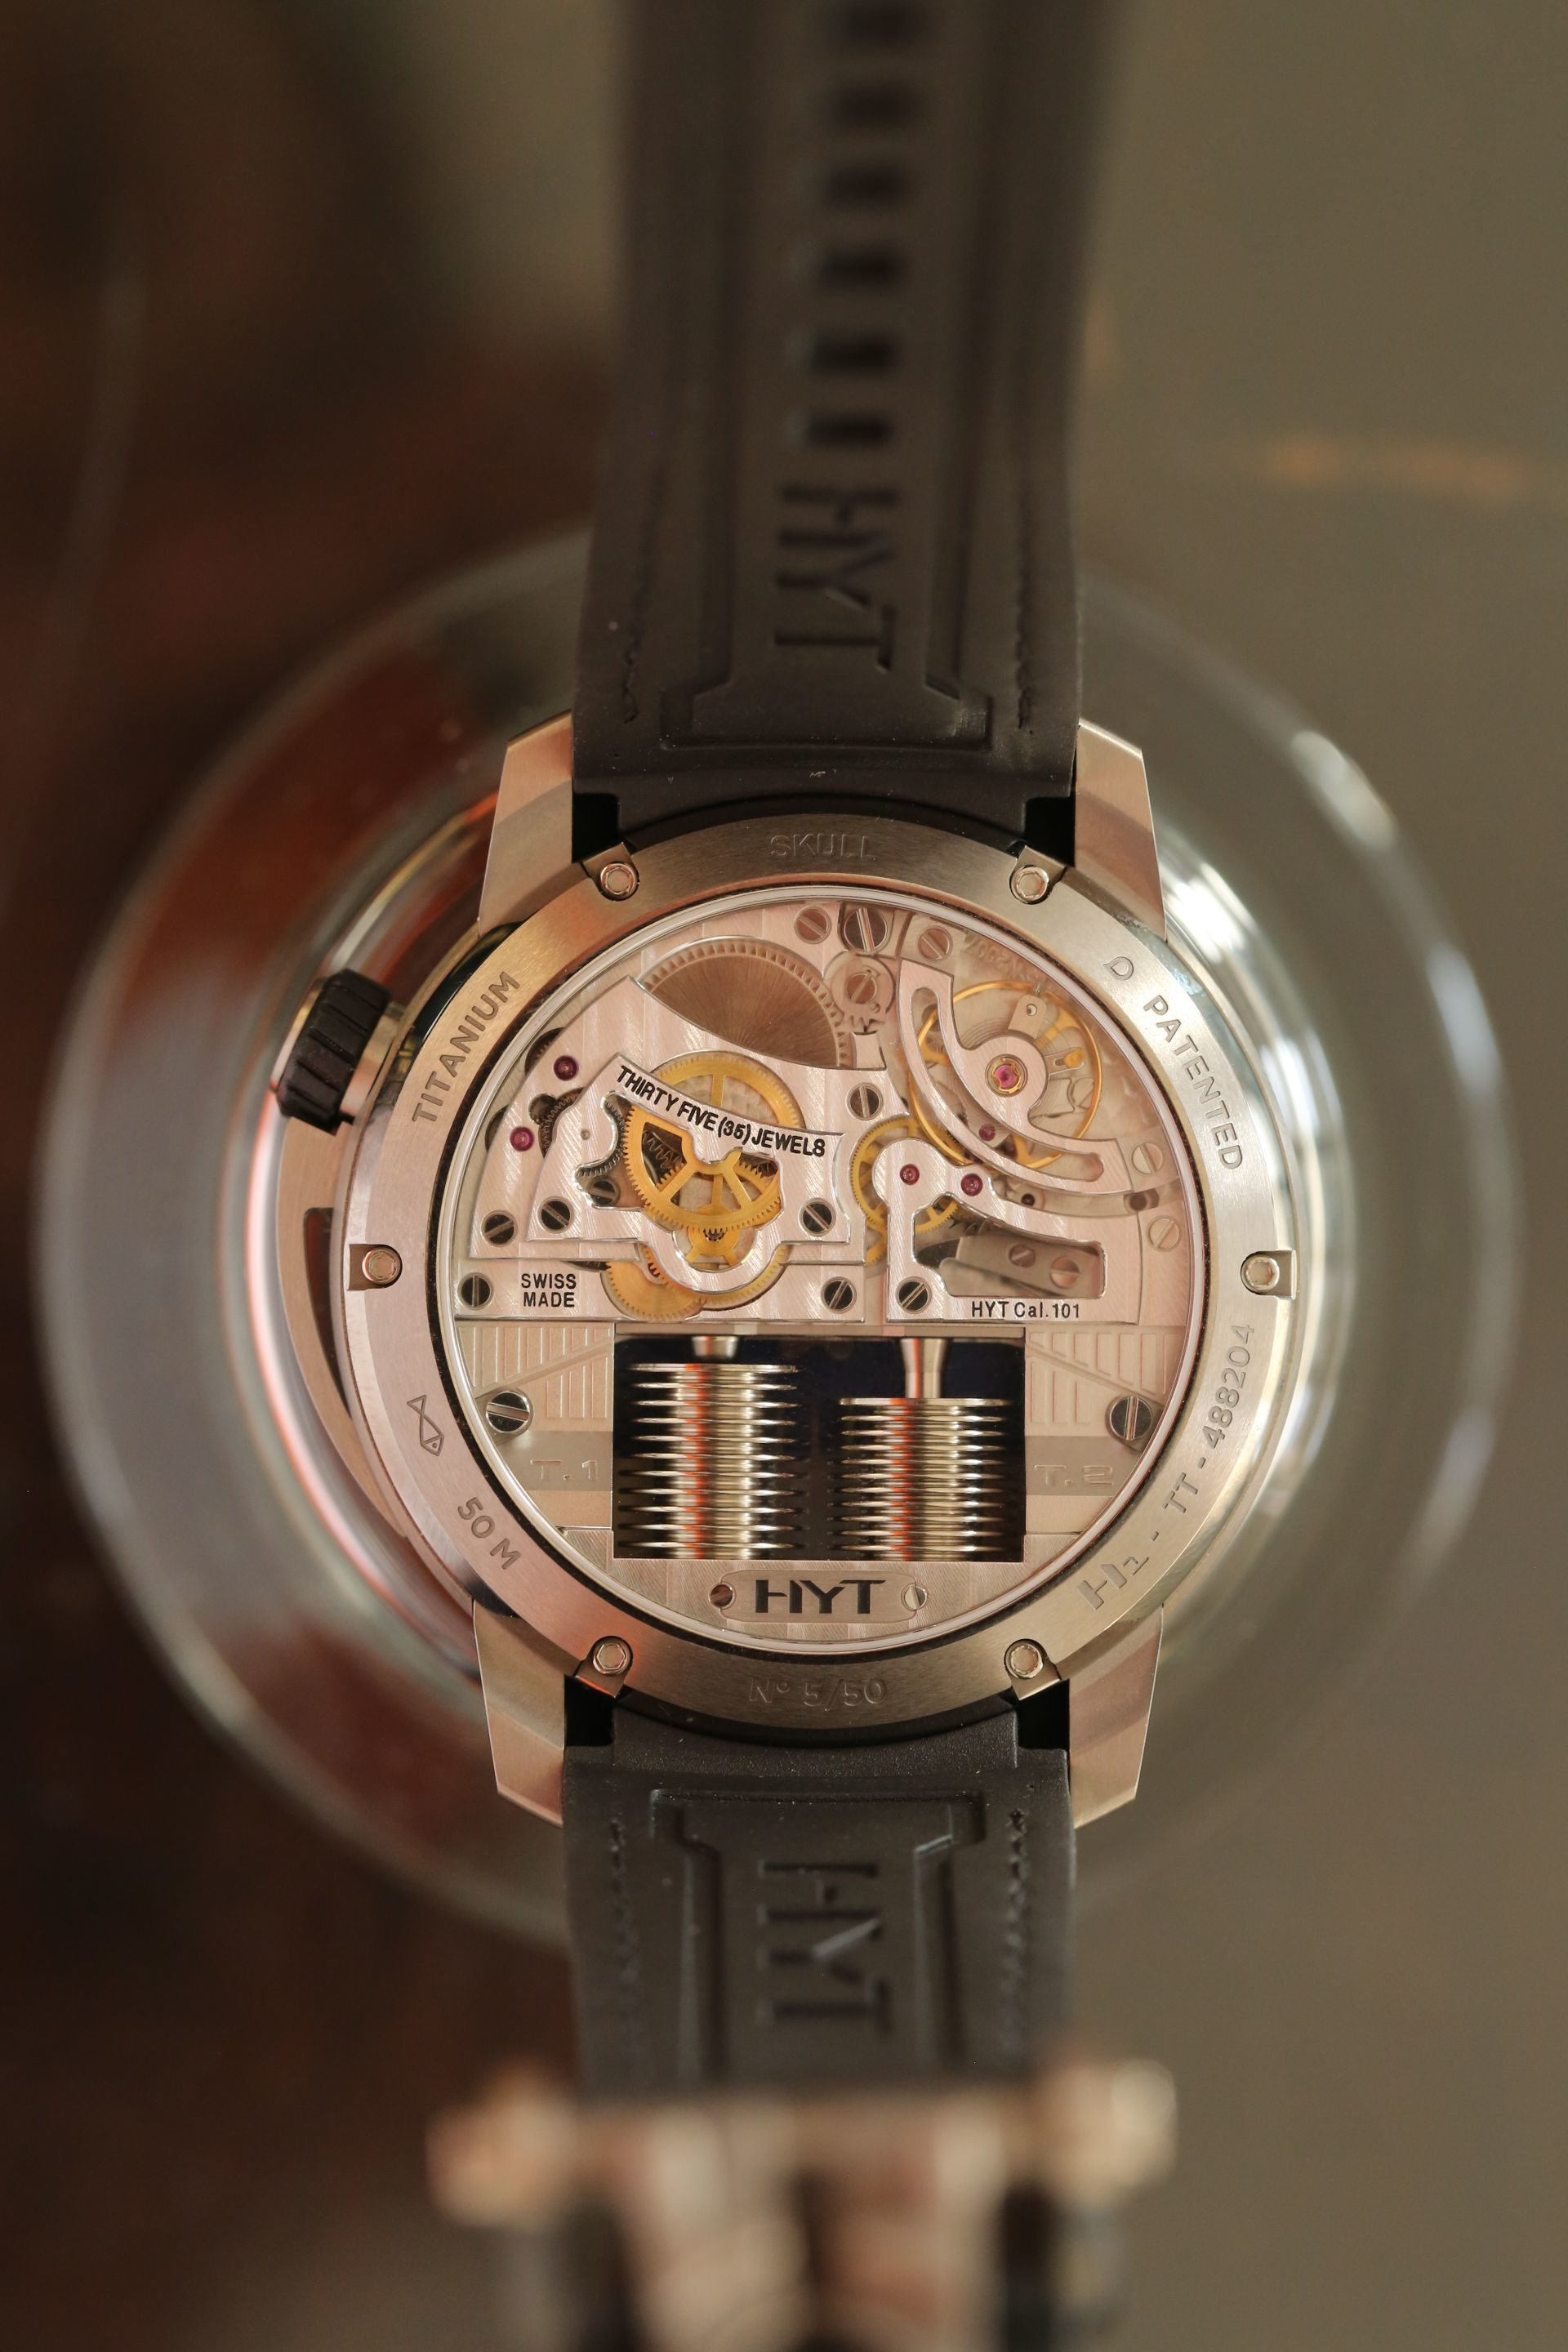 ABHI0926 e1562230741139 - Watchmaking That Transforms People Is The Future : Gregory Dourde CEO HYT Watches